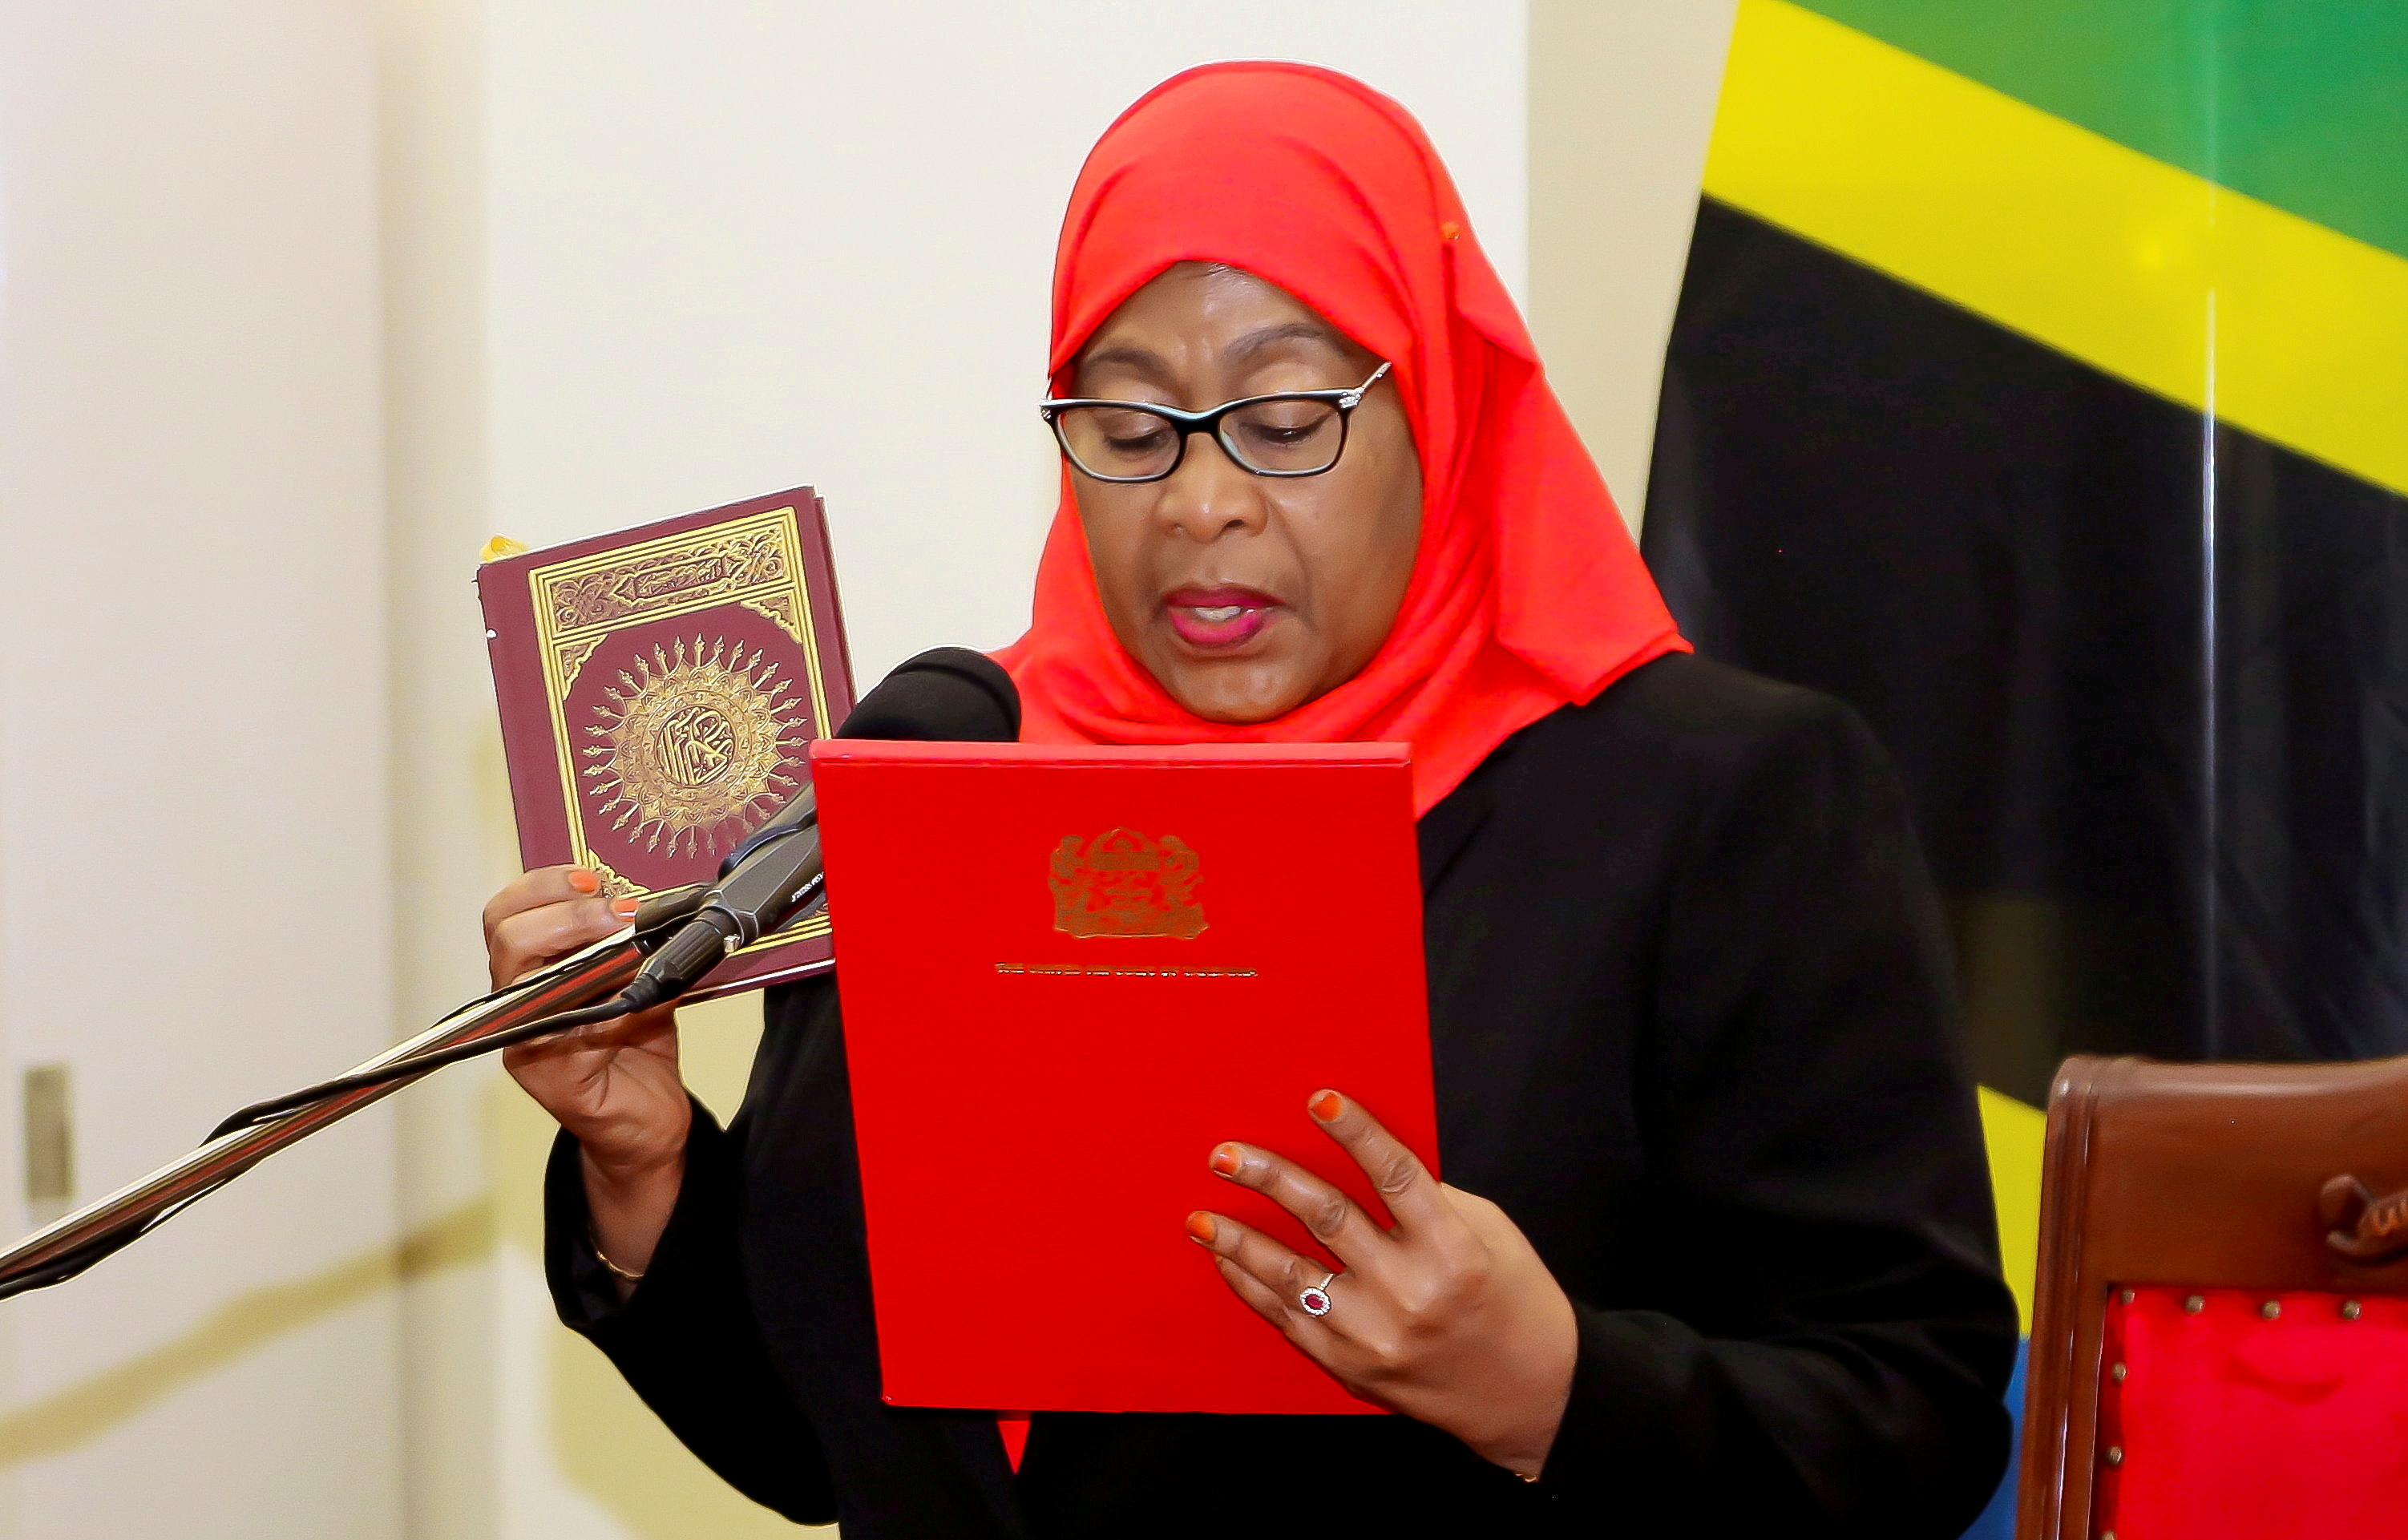 Tanzania's new President Samia Suluhu Hassan takes the oath of office after the death of predecessor John Magufuli, in Dar es Salaam, Tanzania, March 19, 2021. REUTERS/Stringer/File Photo